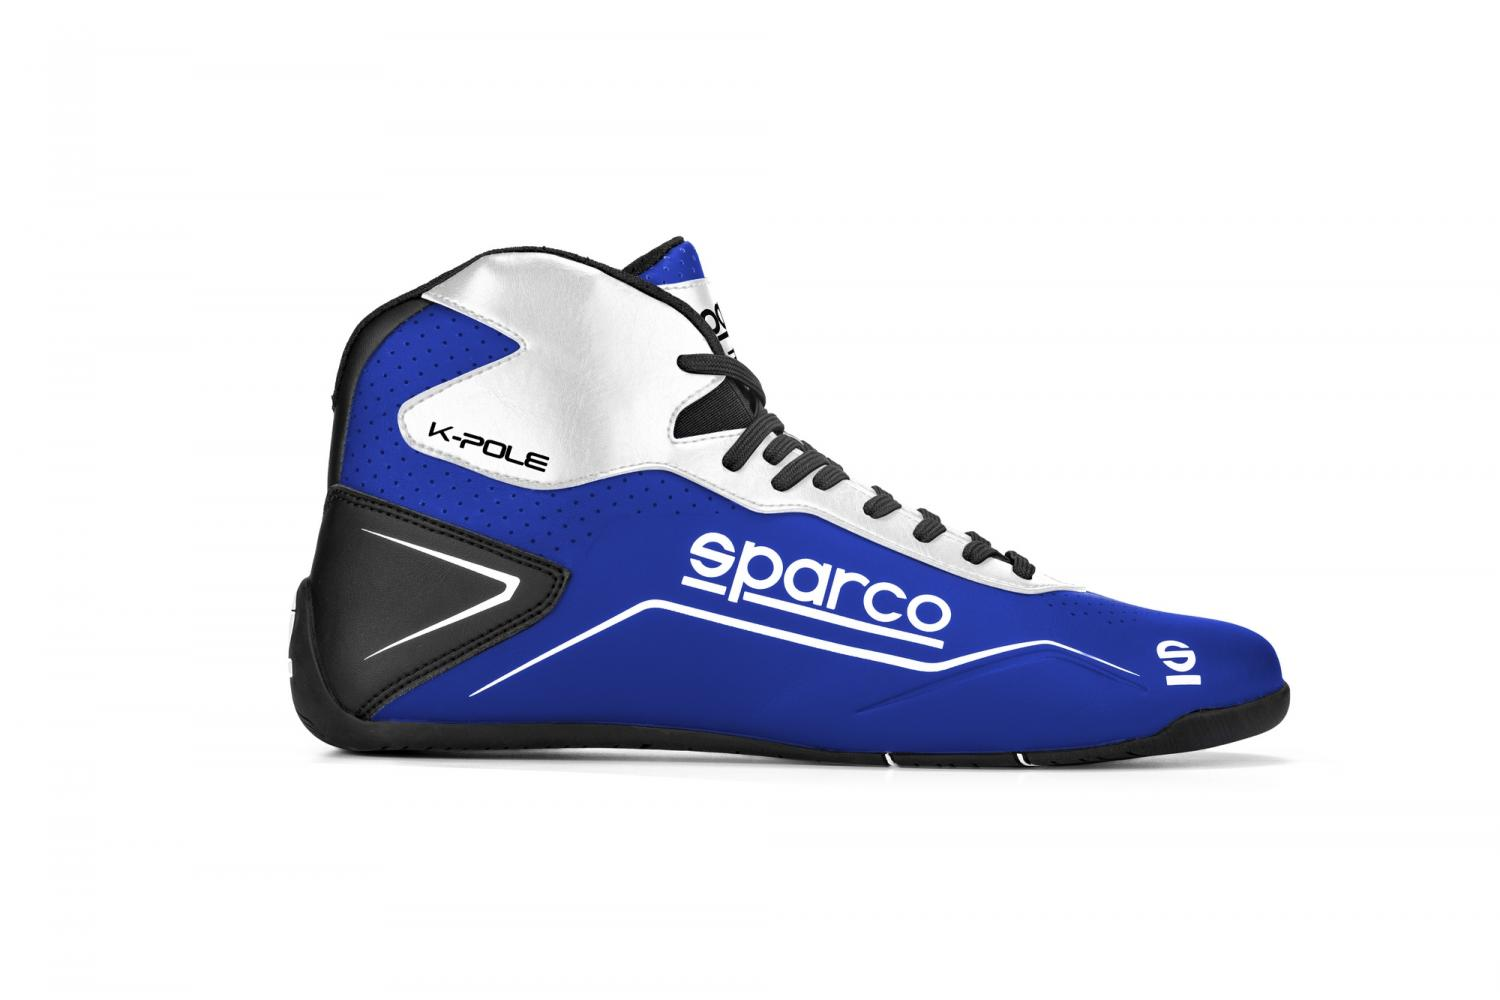 Shoe Sparco K-Pole Blue/White